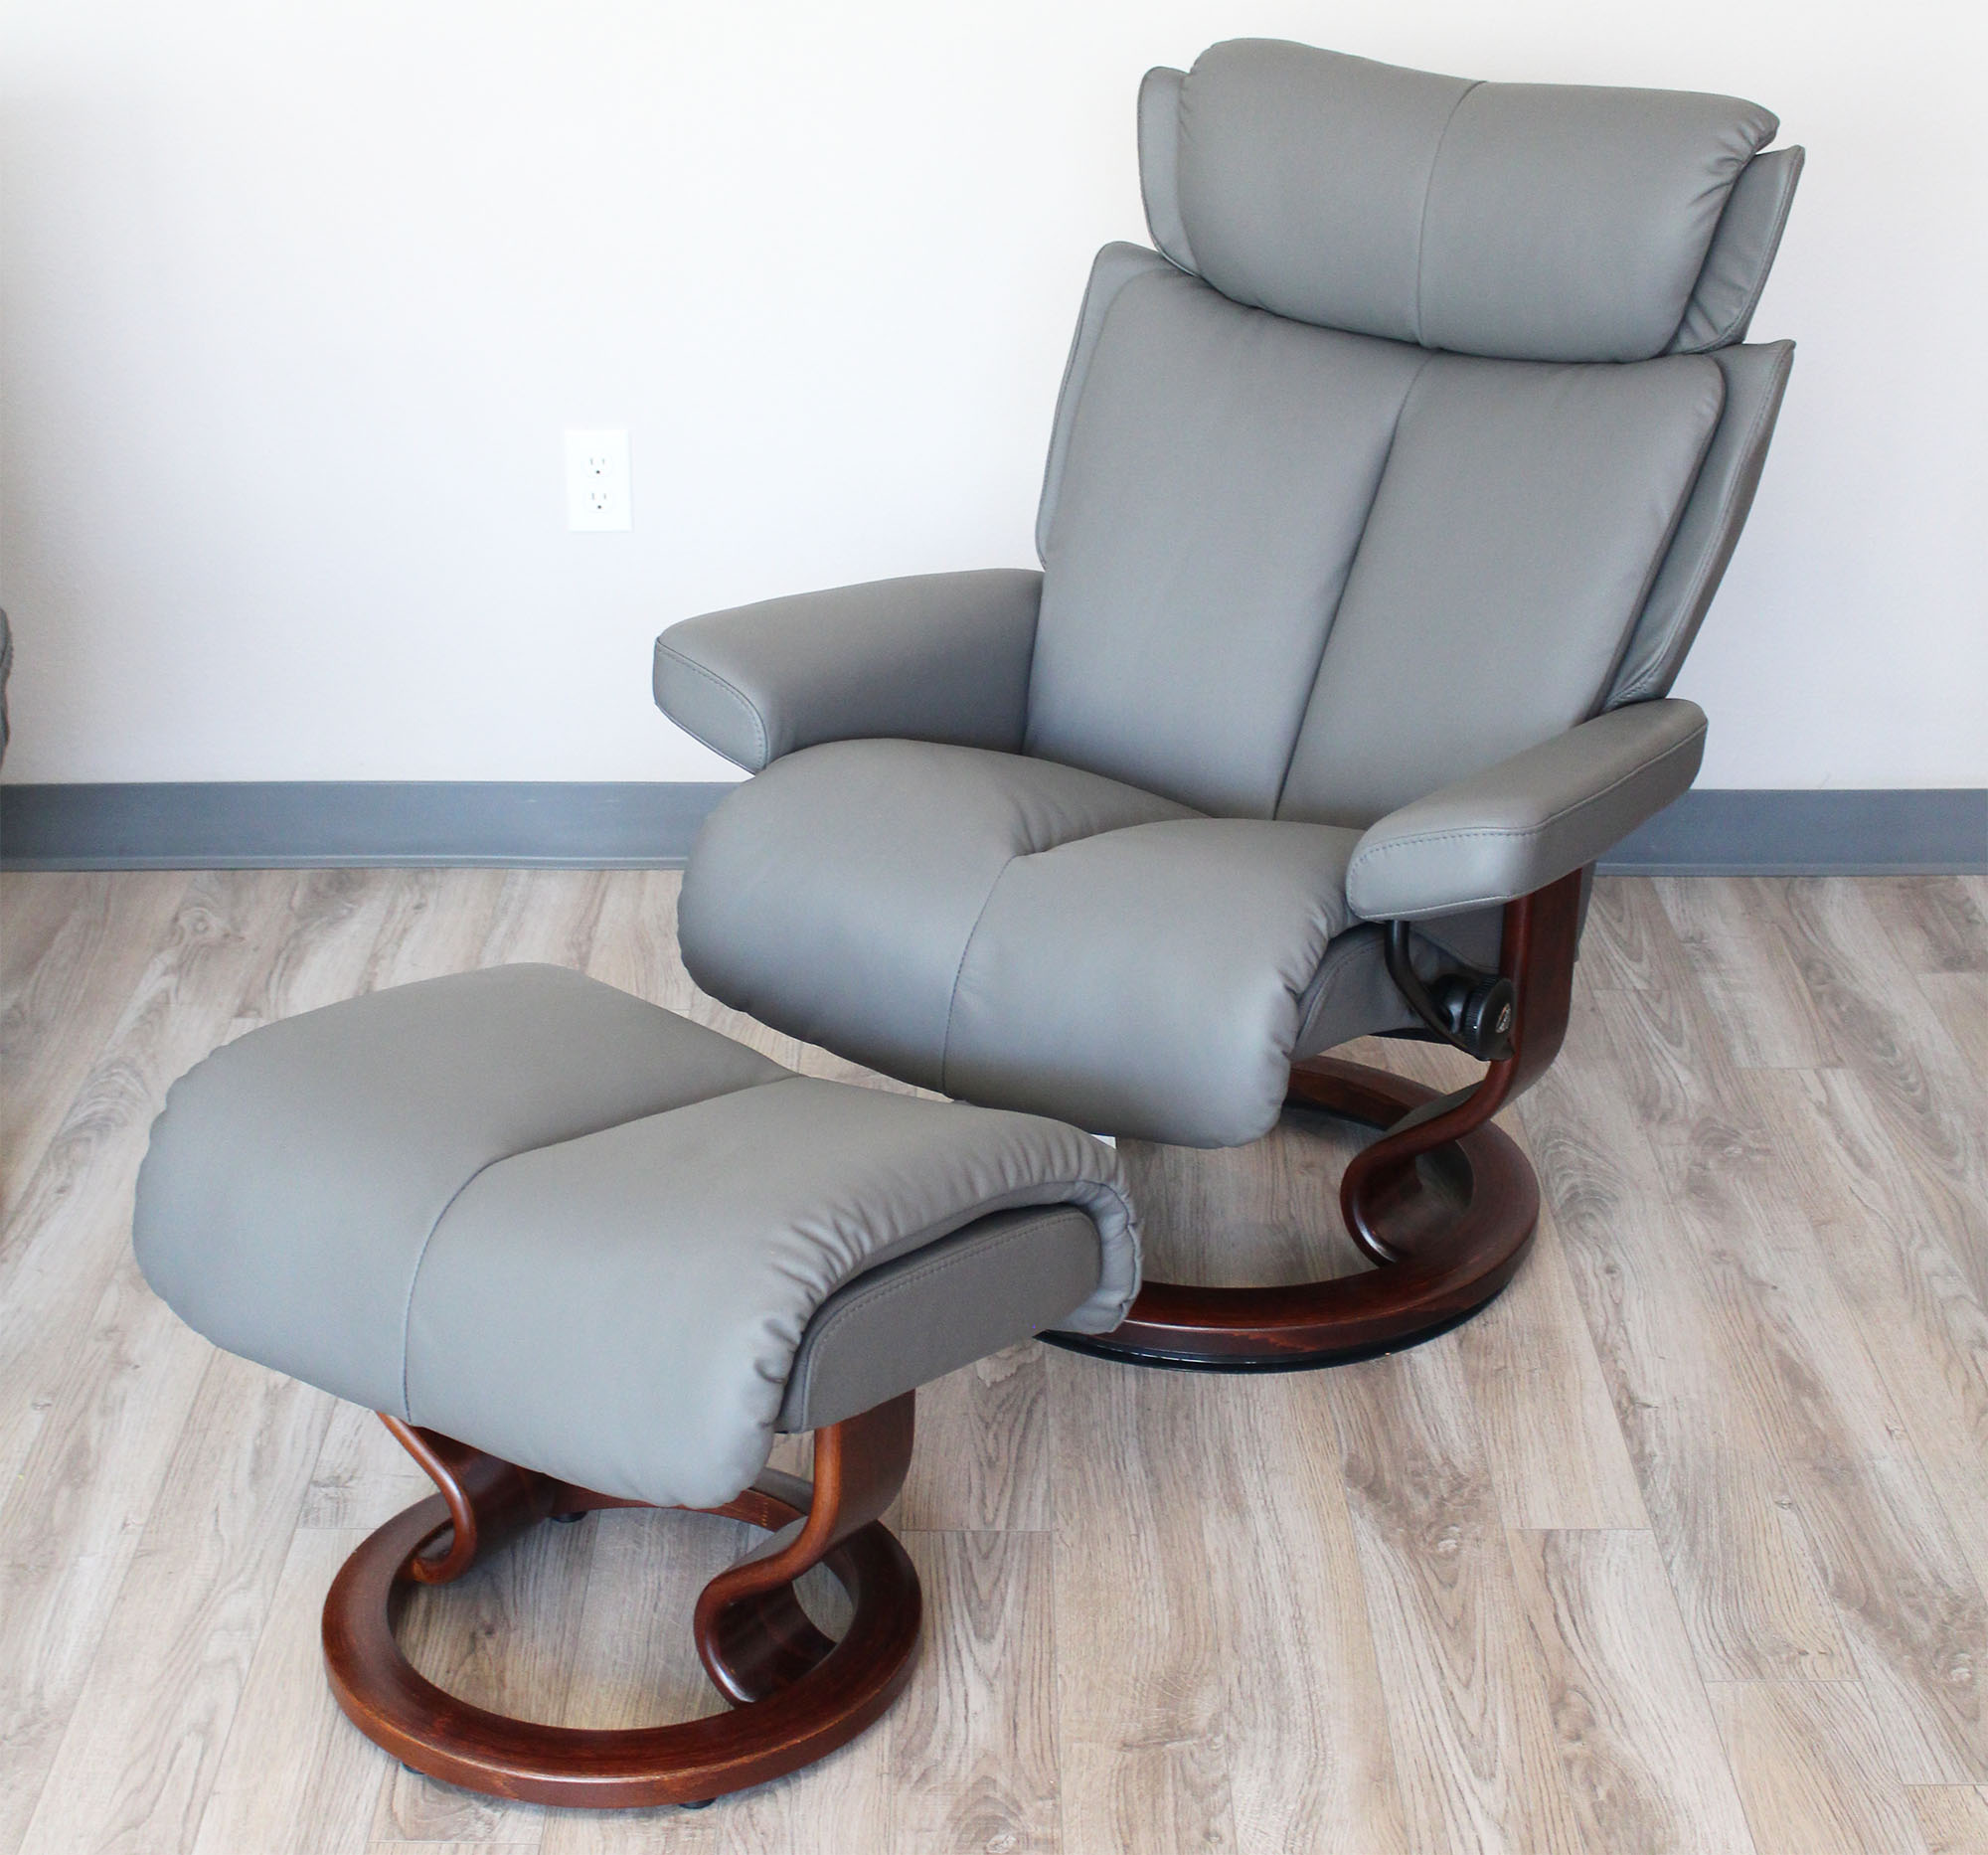 Stressless Paloma Stressless Magic Paloma Metal Grey Leather Recliner Chair And Ottoman By Ekornes